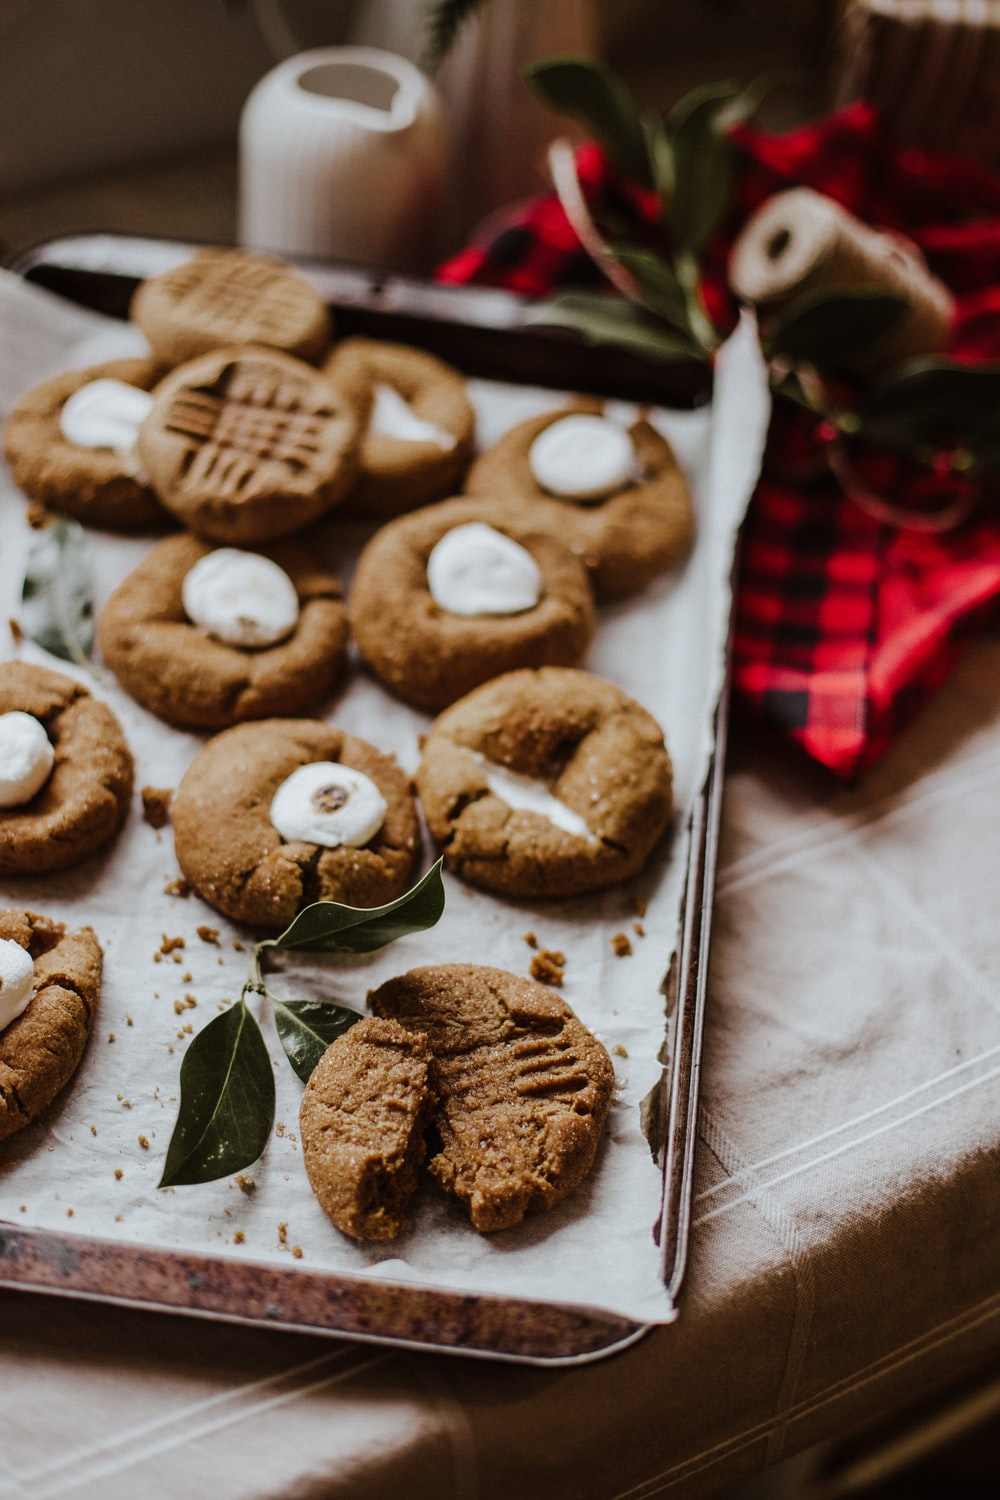 cookies on white paper beside red and white checkered textile